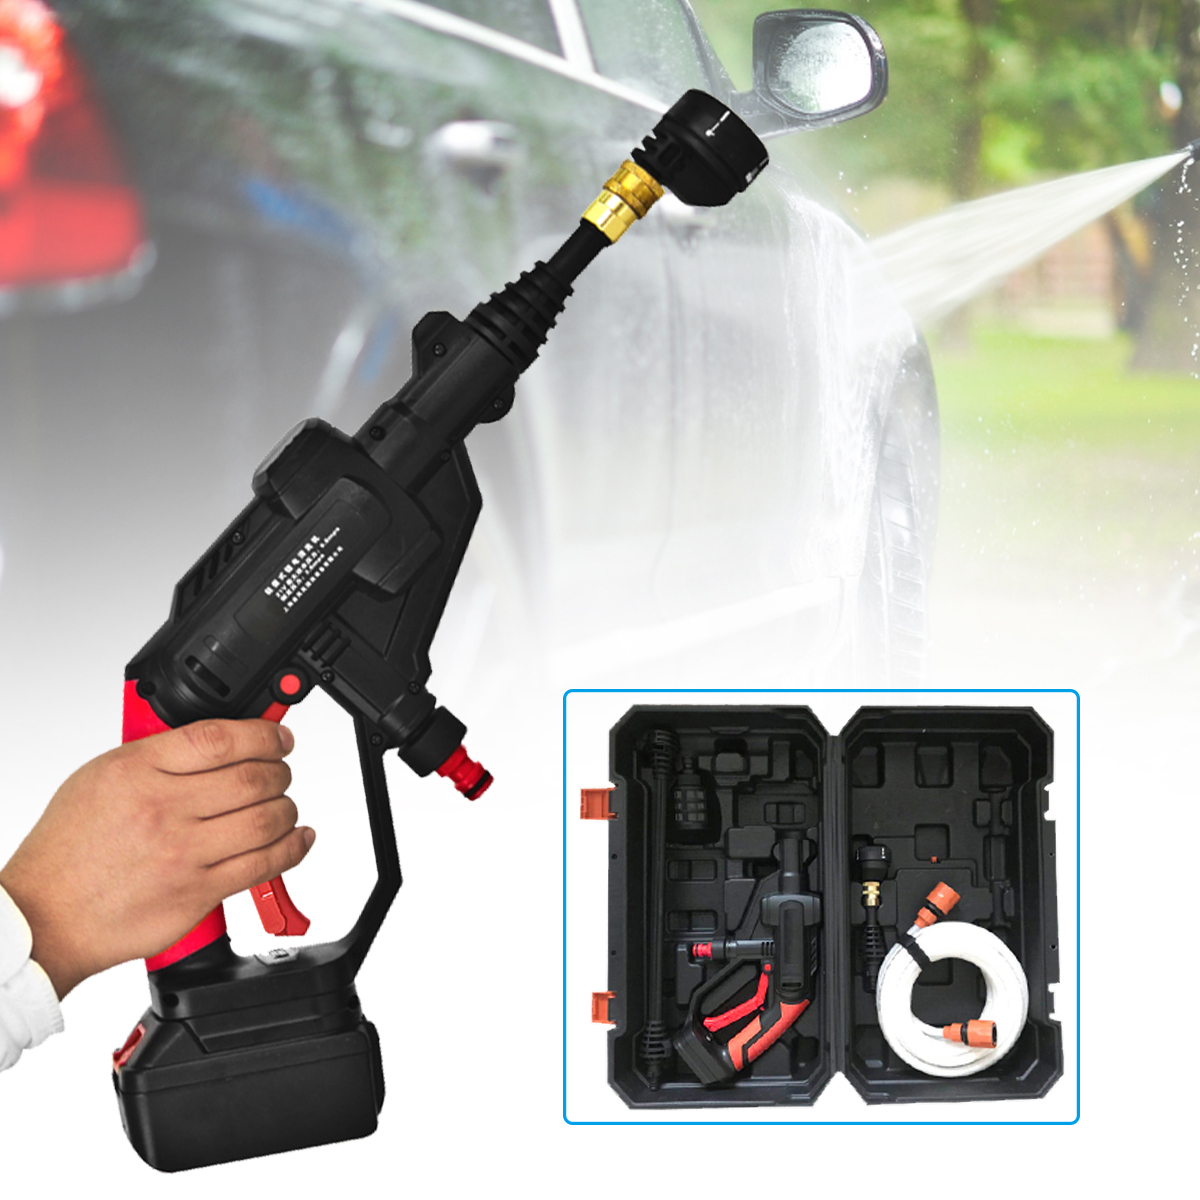 Multifunctional Cordless Pressure Cleaner Washer Gun Water Hose Nozzle Pump with Battery